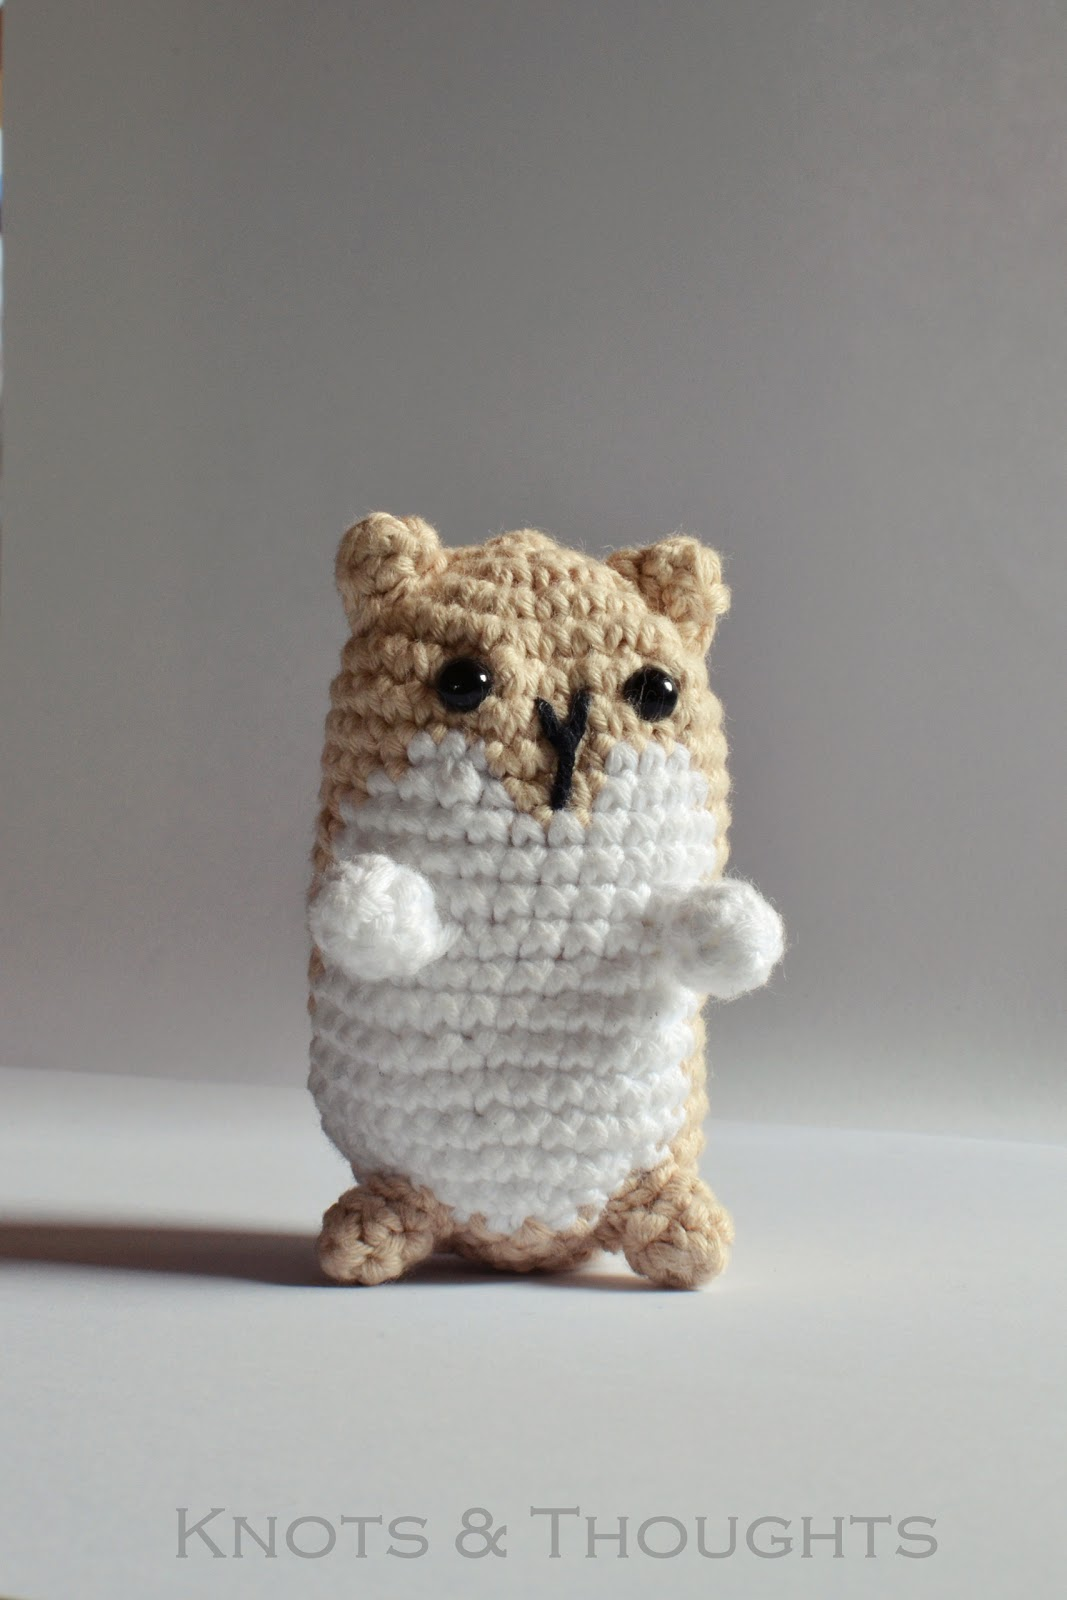 Frida Kahlo Amigurumi Free Pattern : Knots and Thoughts: Amigurumi Hamster - my first finished ...